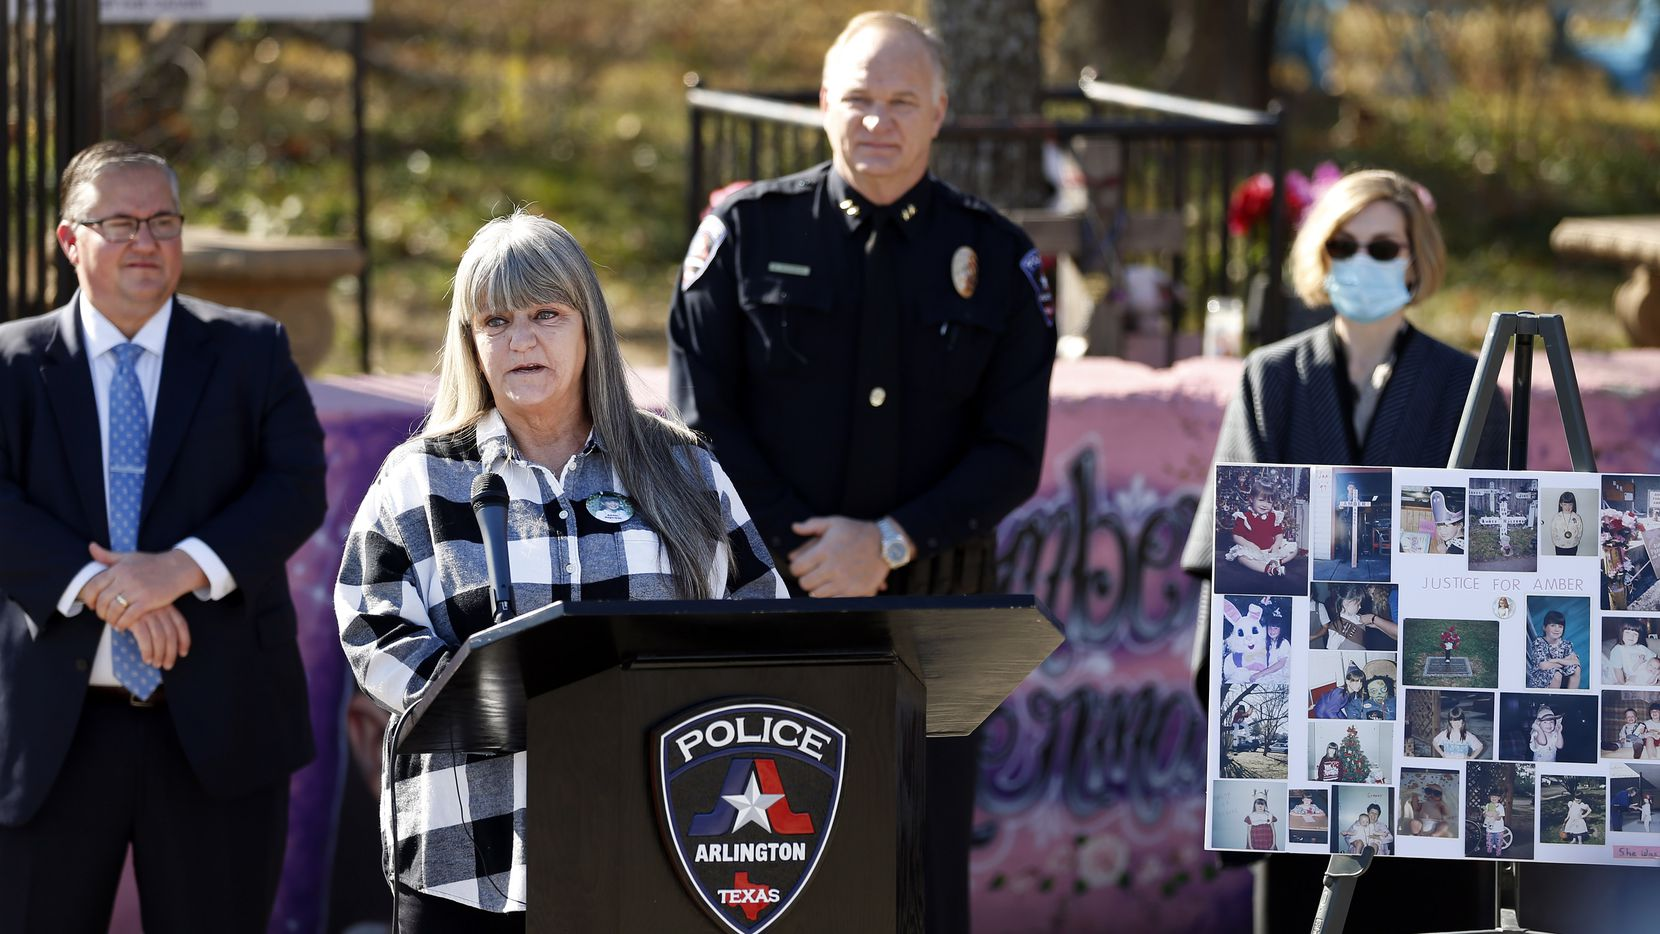 Amber Hagerman's mother Donna Williams makes a plea for her daughter's killer to turn himself in during a press conference at the abduction site in Arlington on Wednesday.